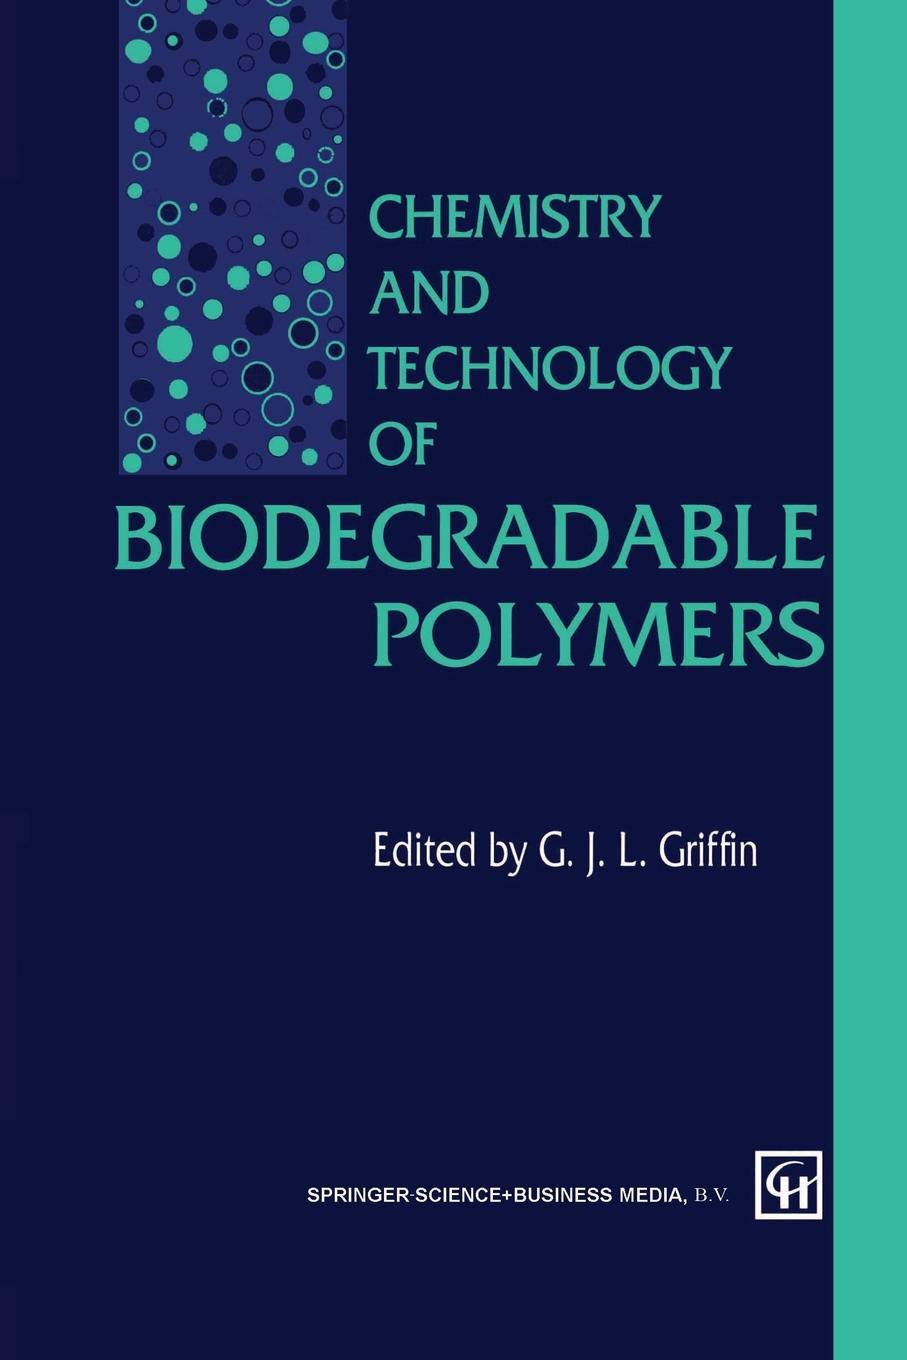 Chemistry and Technology of Biodegradable Polymers: Amazon.es ...